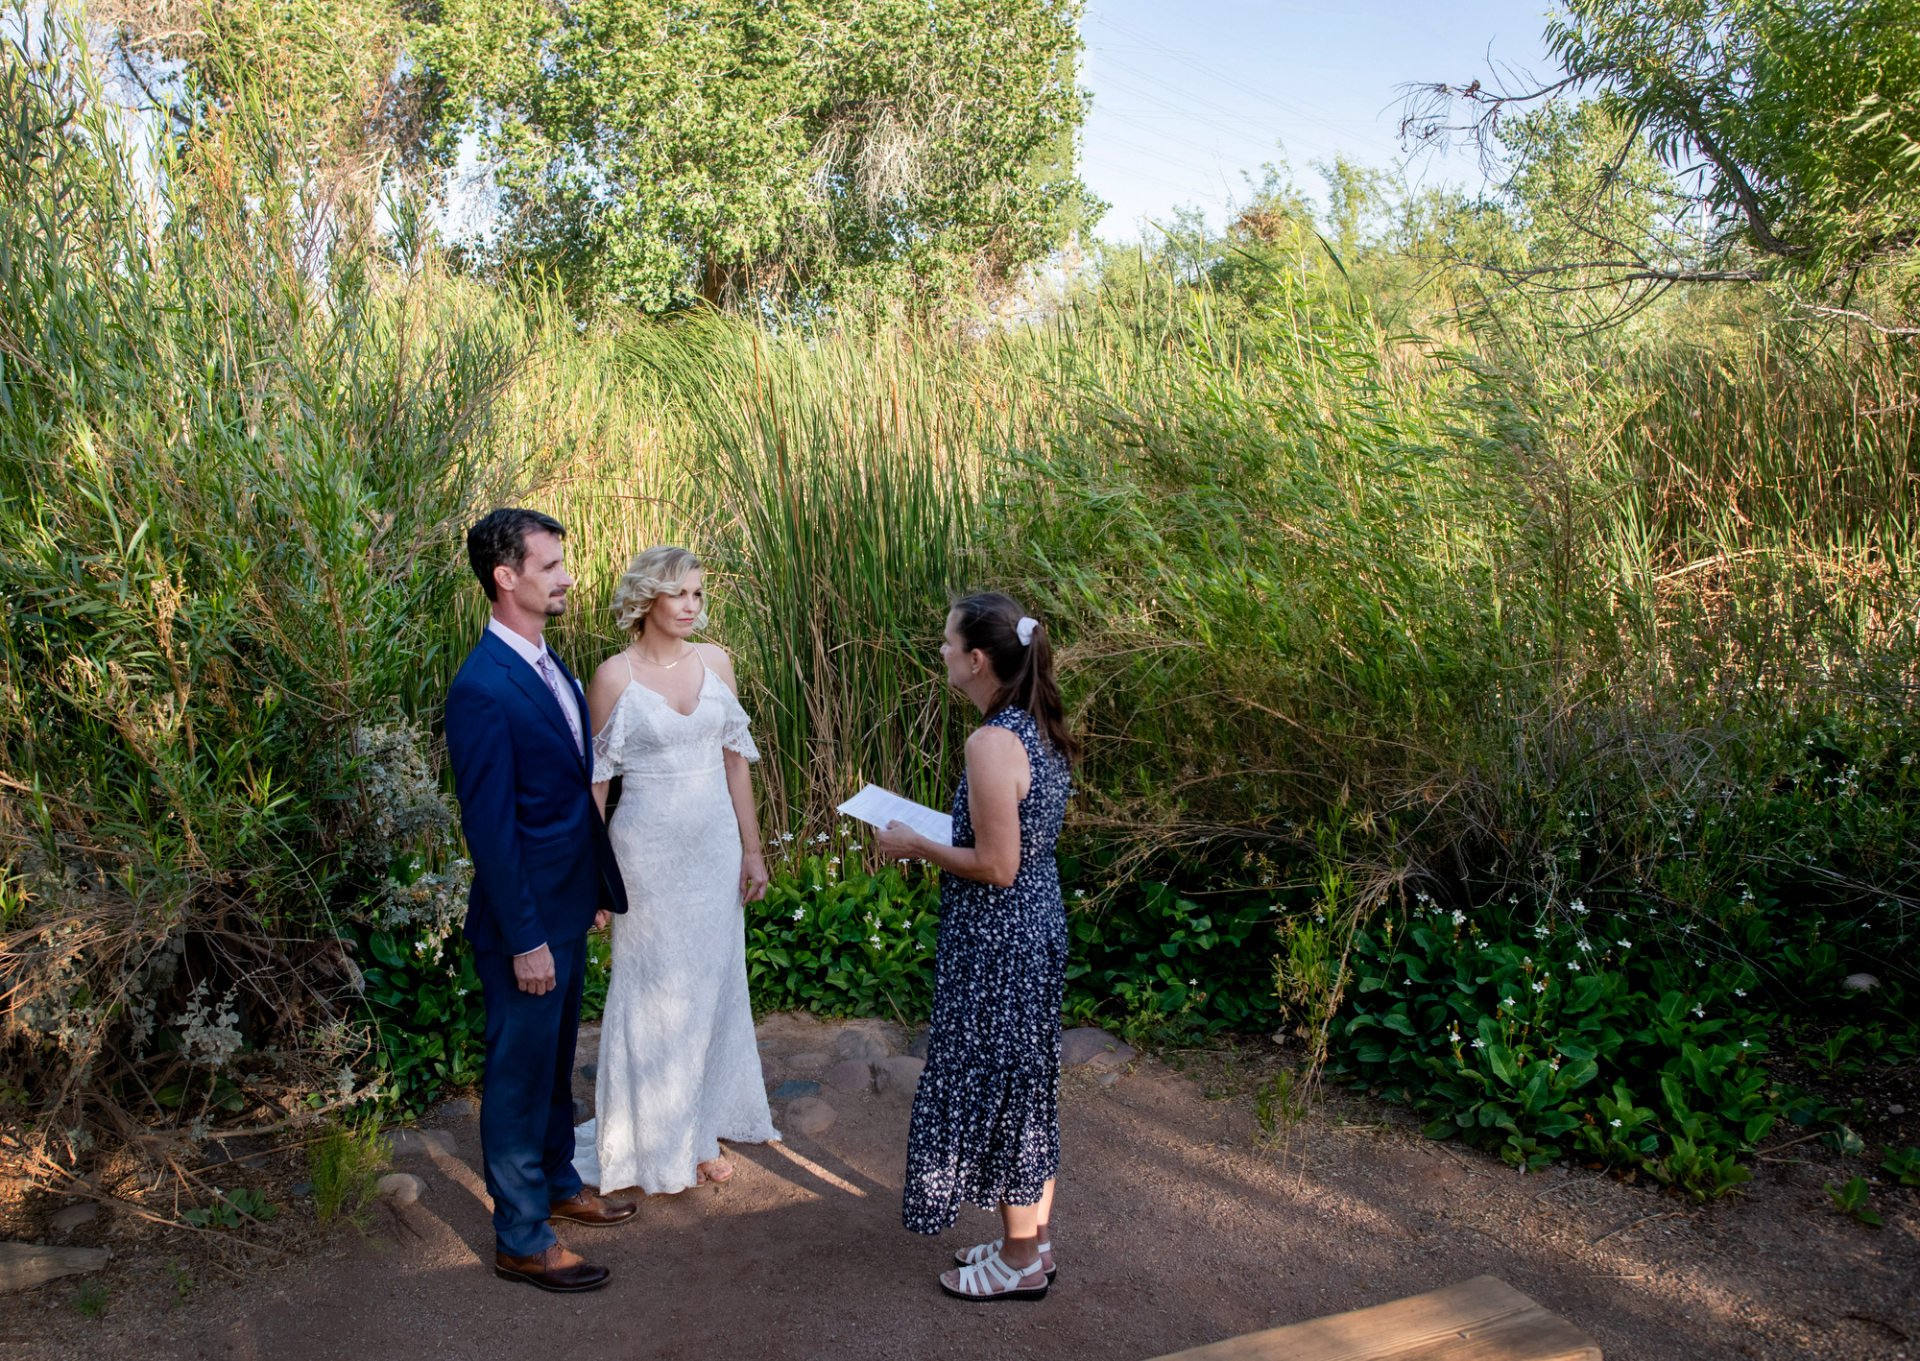 Phoenix Wedding Photography from Desert Botanical Gardens | Tucked away in a quiet corner along the trail, the bride and groom say their vows in privacy